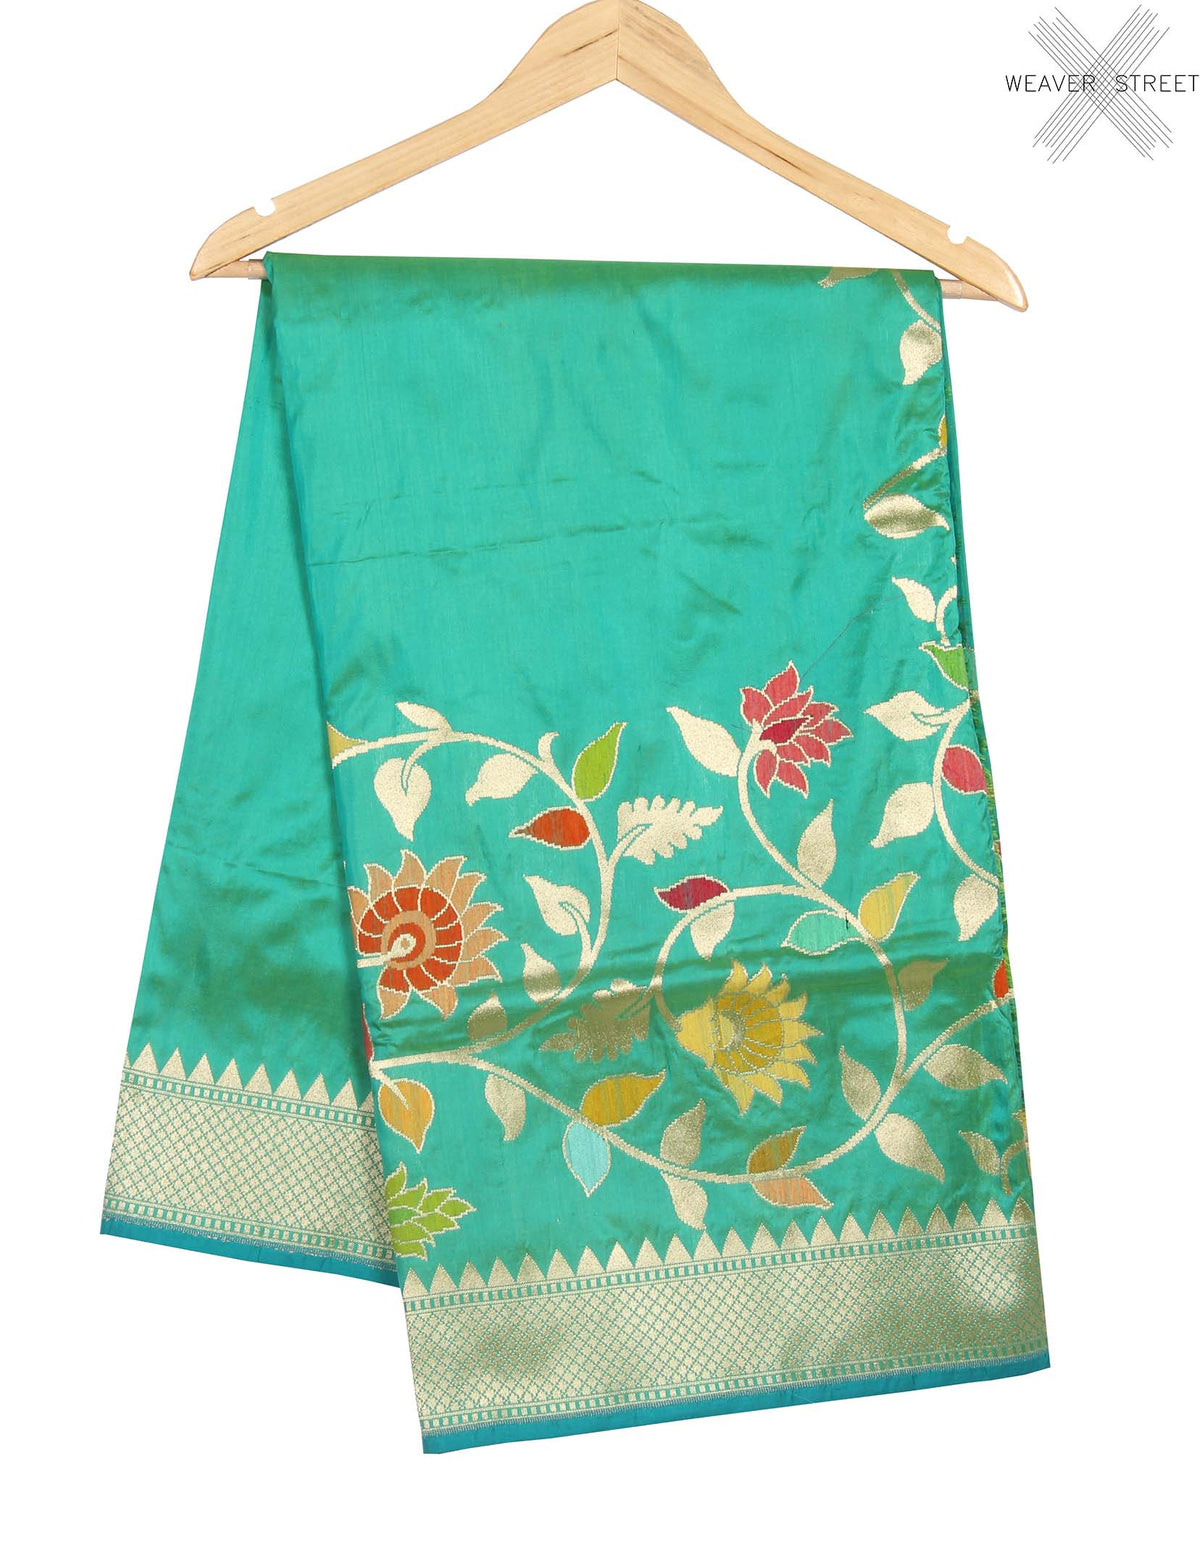 Sea Green Katan Silk Handwoven Banarasi saree with meenedar floral jaal border (1) main